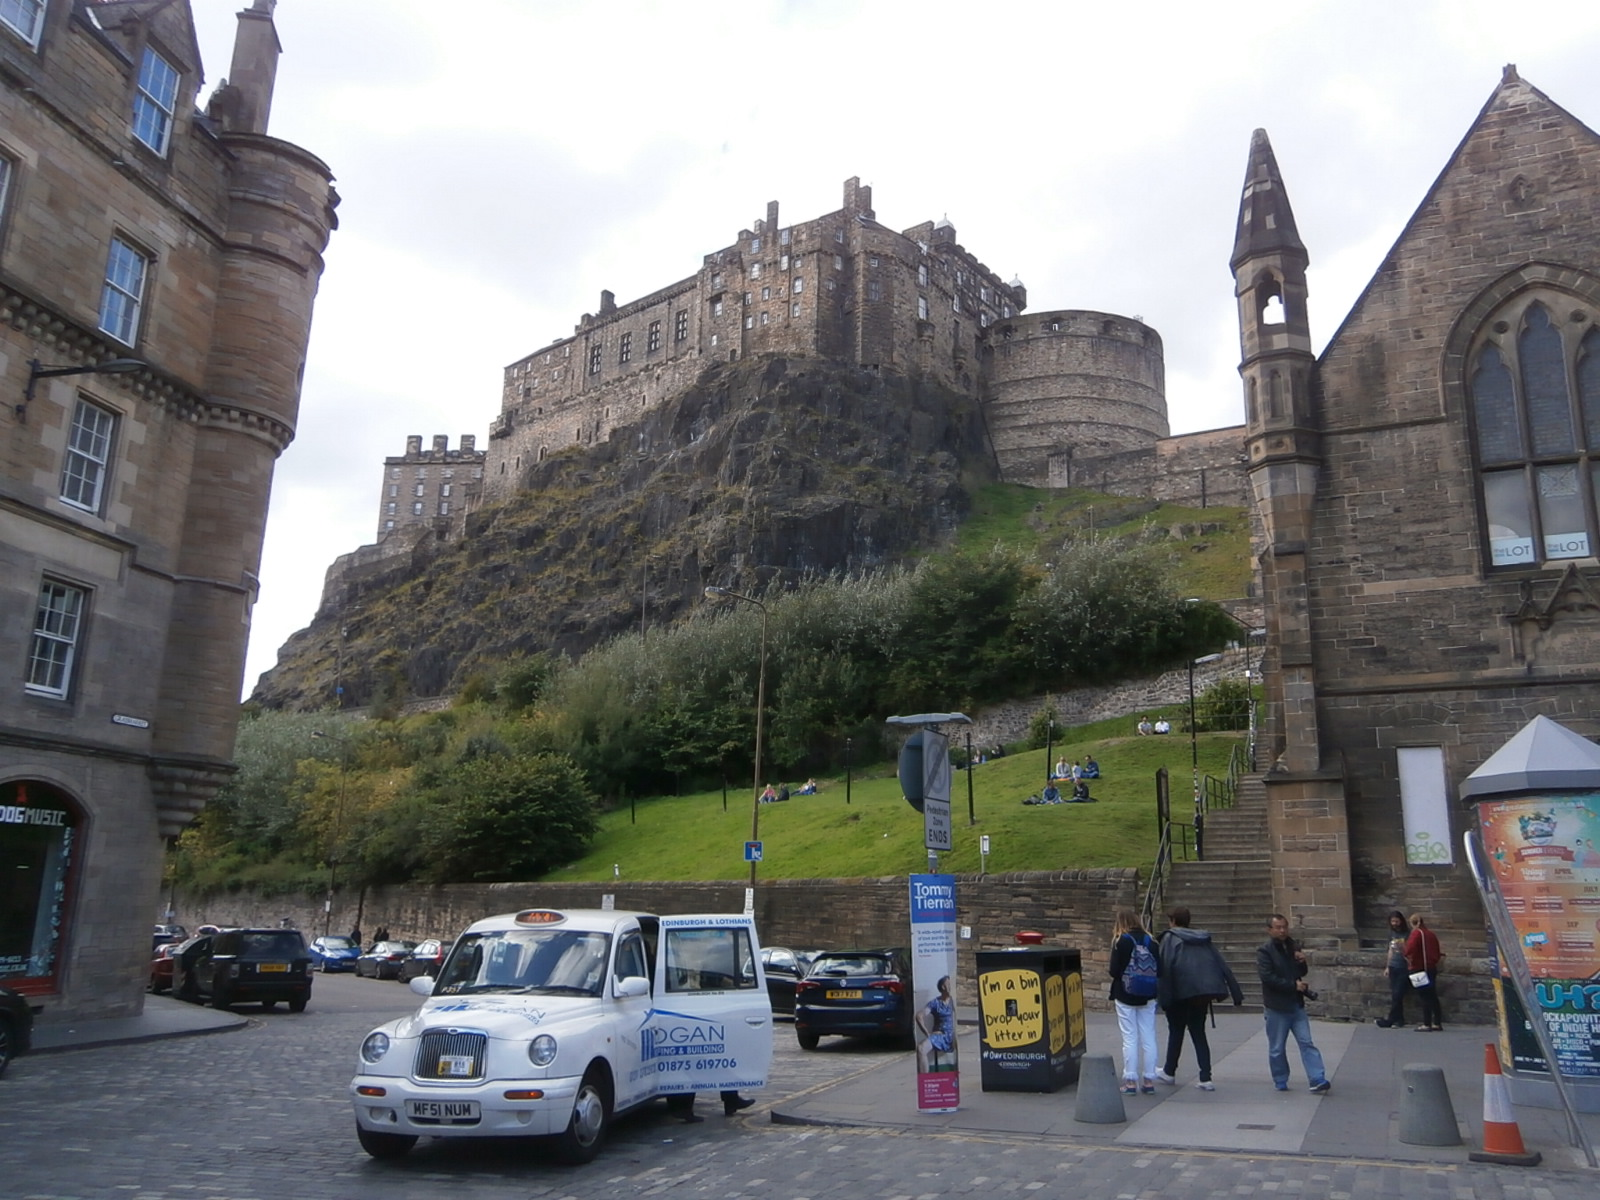 edinburgh chatrooms Free chat site for scotland england wales ireland suited to people with any interests and after some fun.